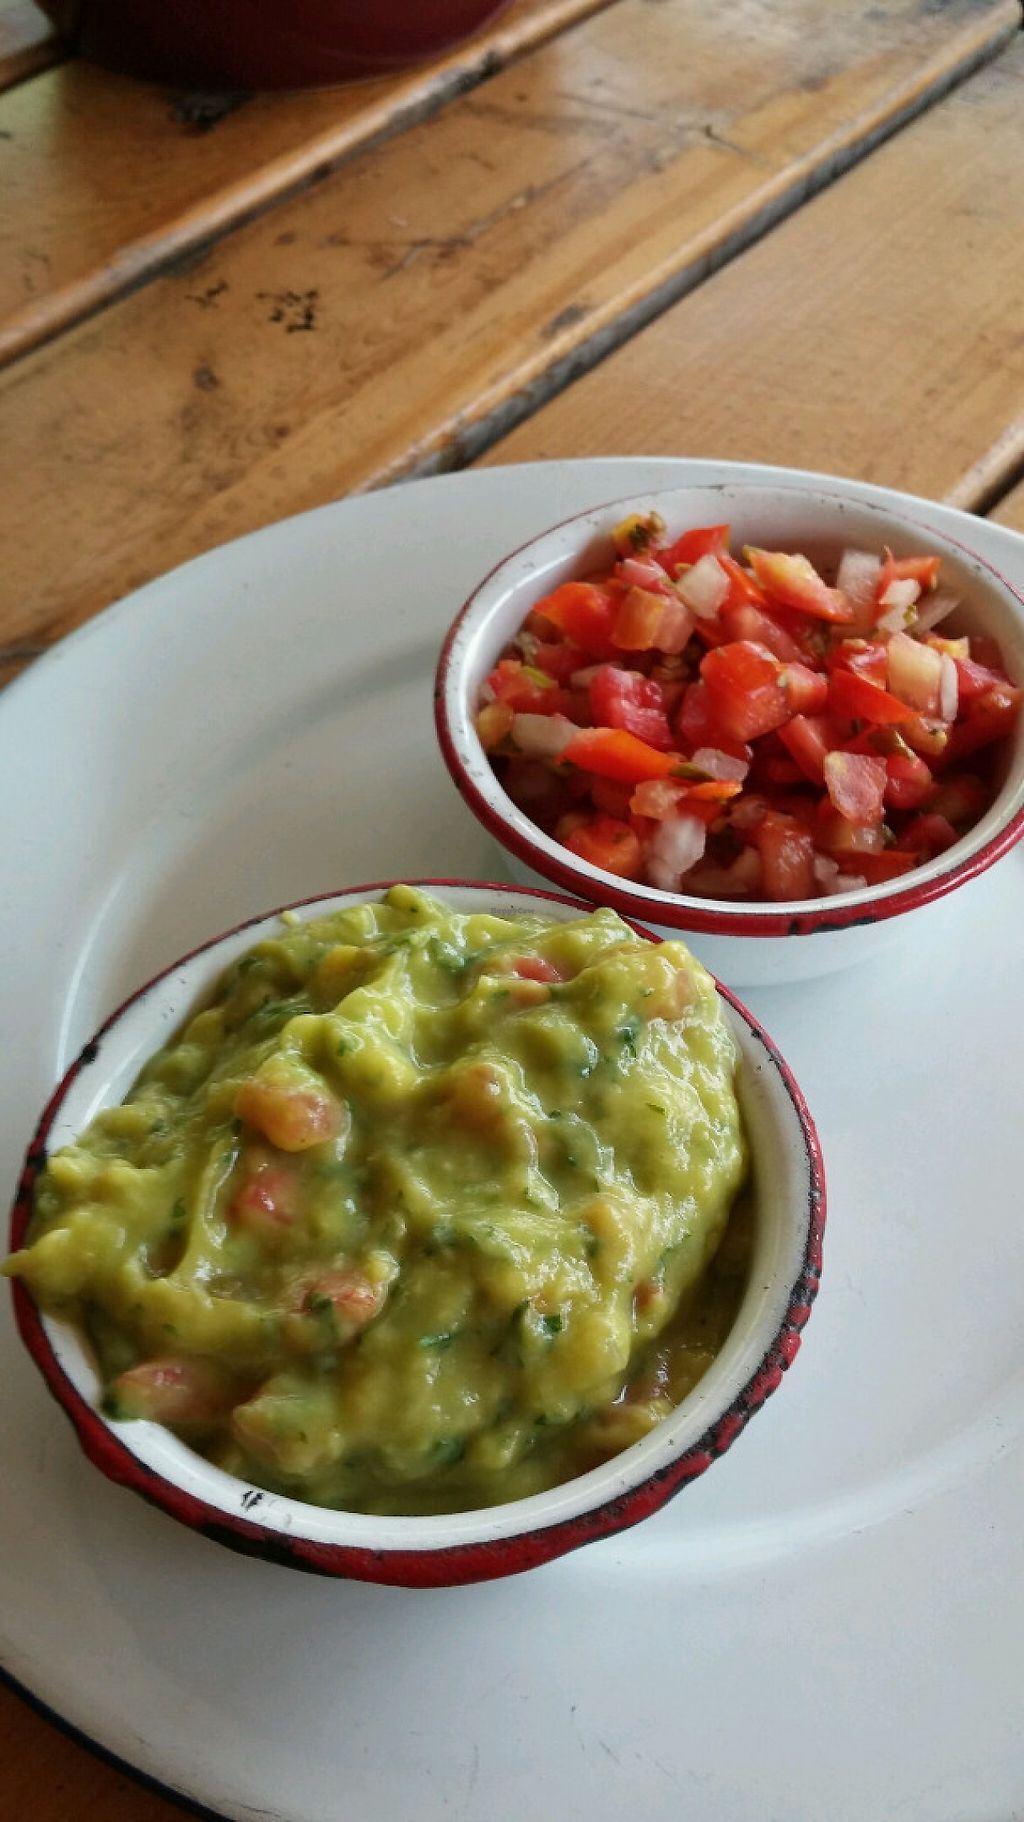 "Photo of Wacamole  by <a href=""/members/profile/jasminebagha"">jasminebagha</a> <br/>Chips come with guacamole, tomatoes, a small bowl of beans and 2 different hot sauces <br/> May 26, 2017  - <a href='/contact/abuse/image/92791/262696'>Report</a>"